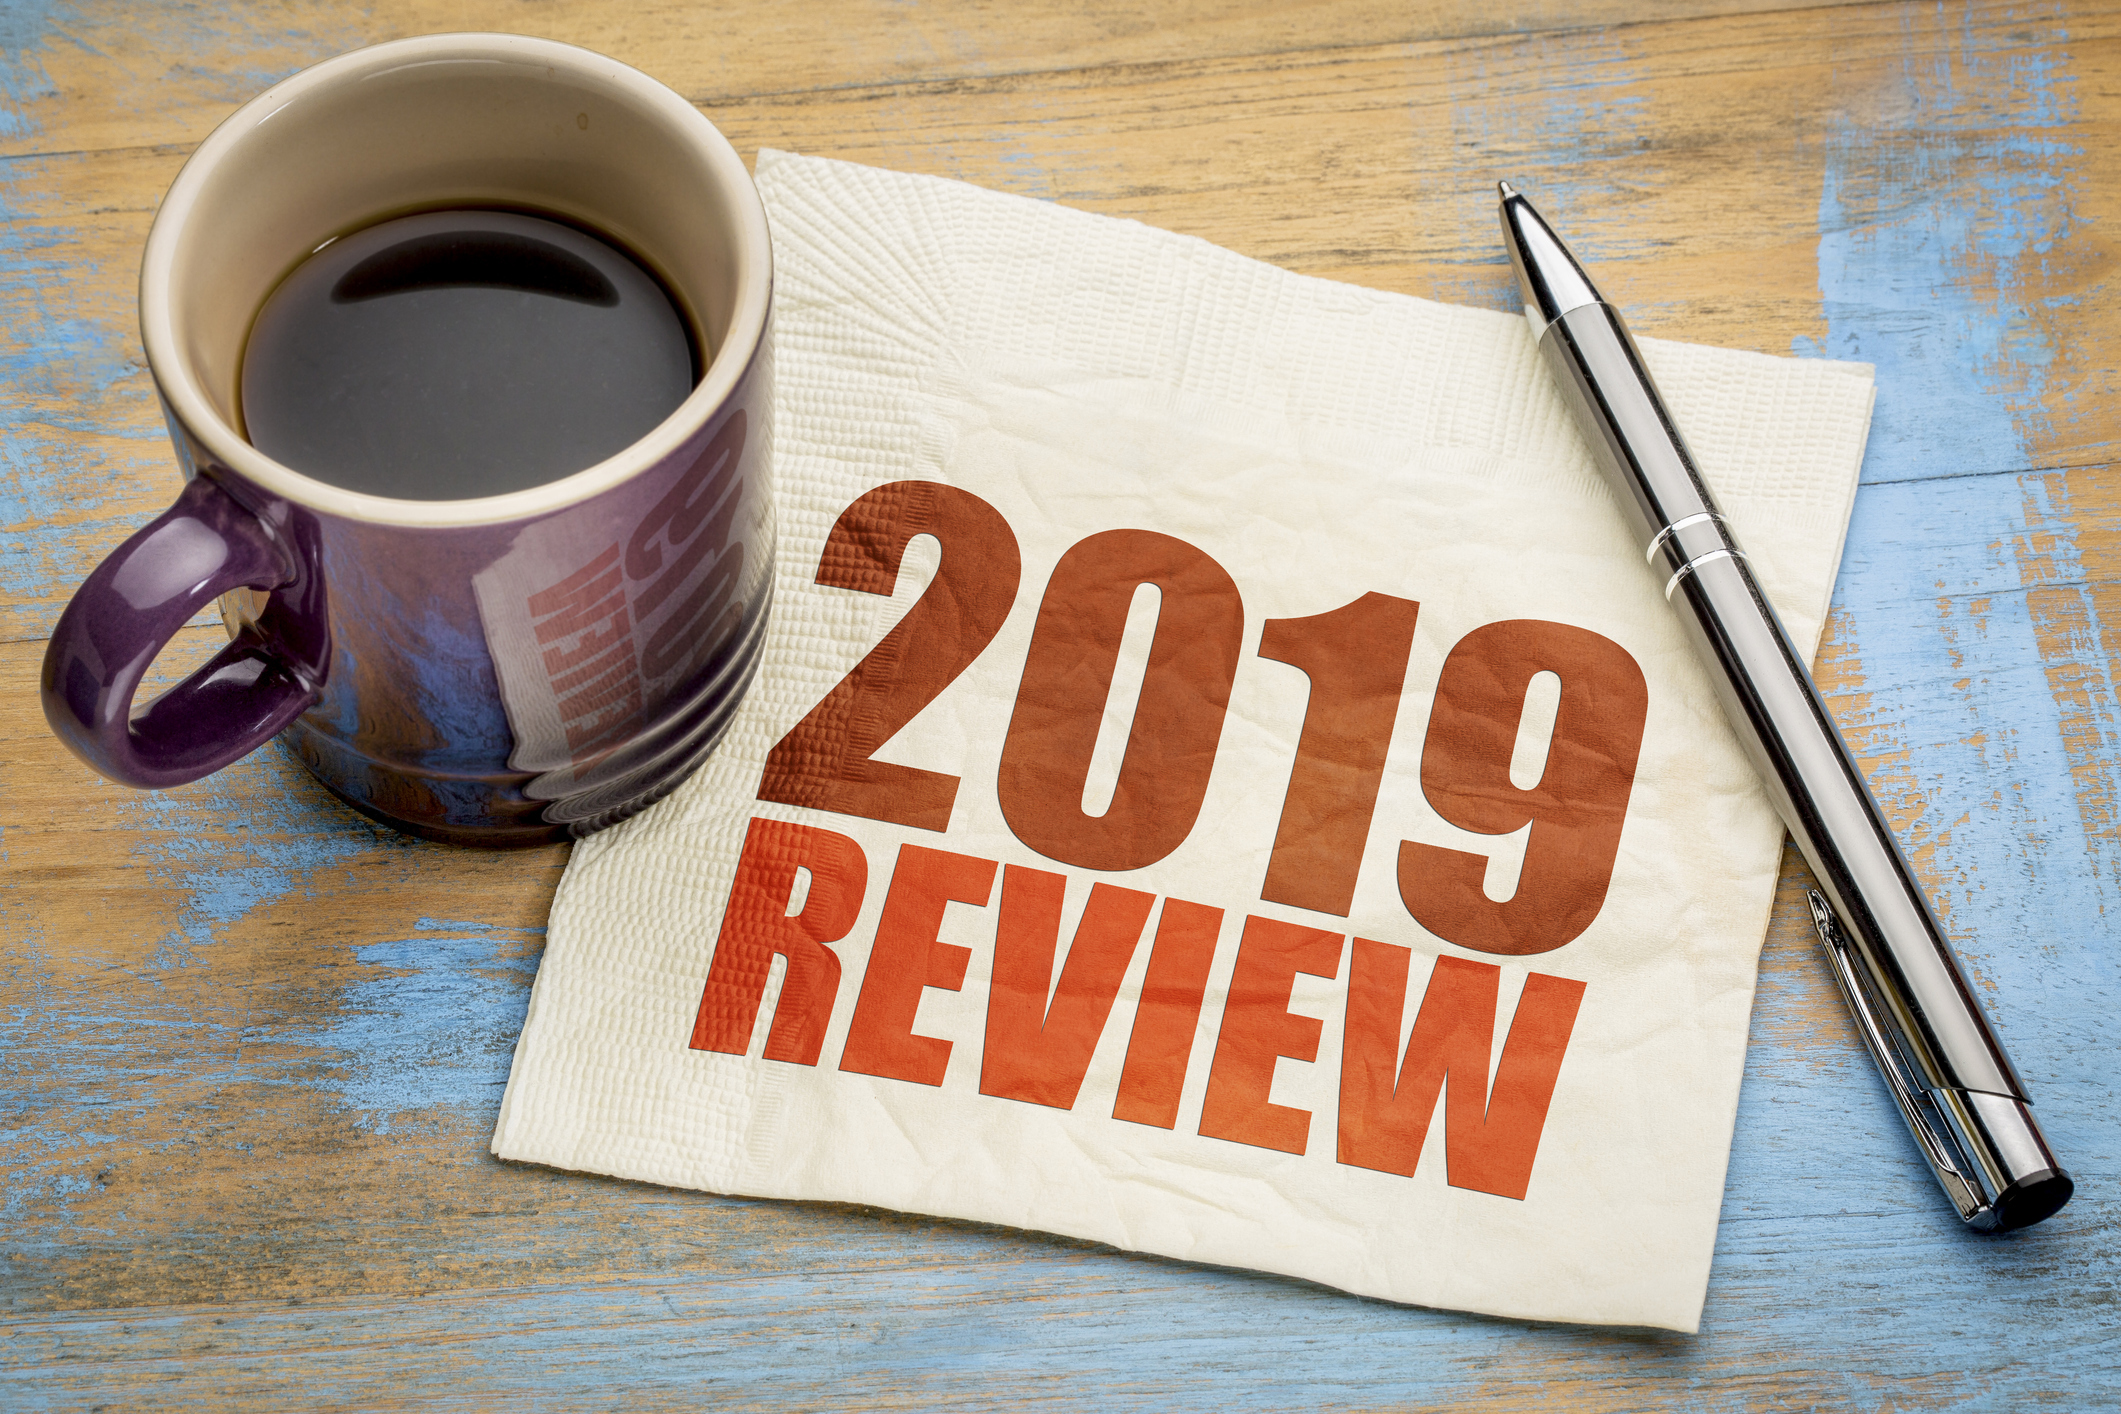 2019 the Year in Review